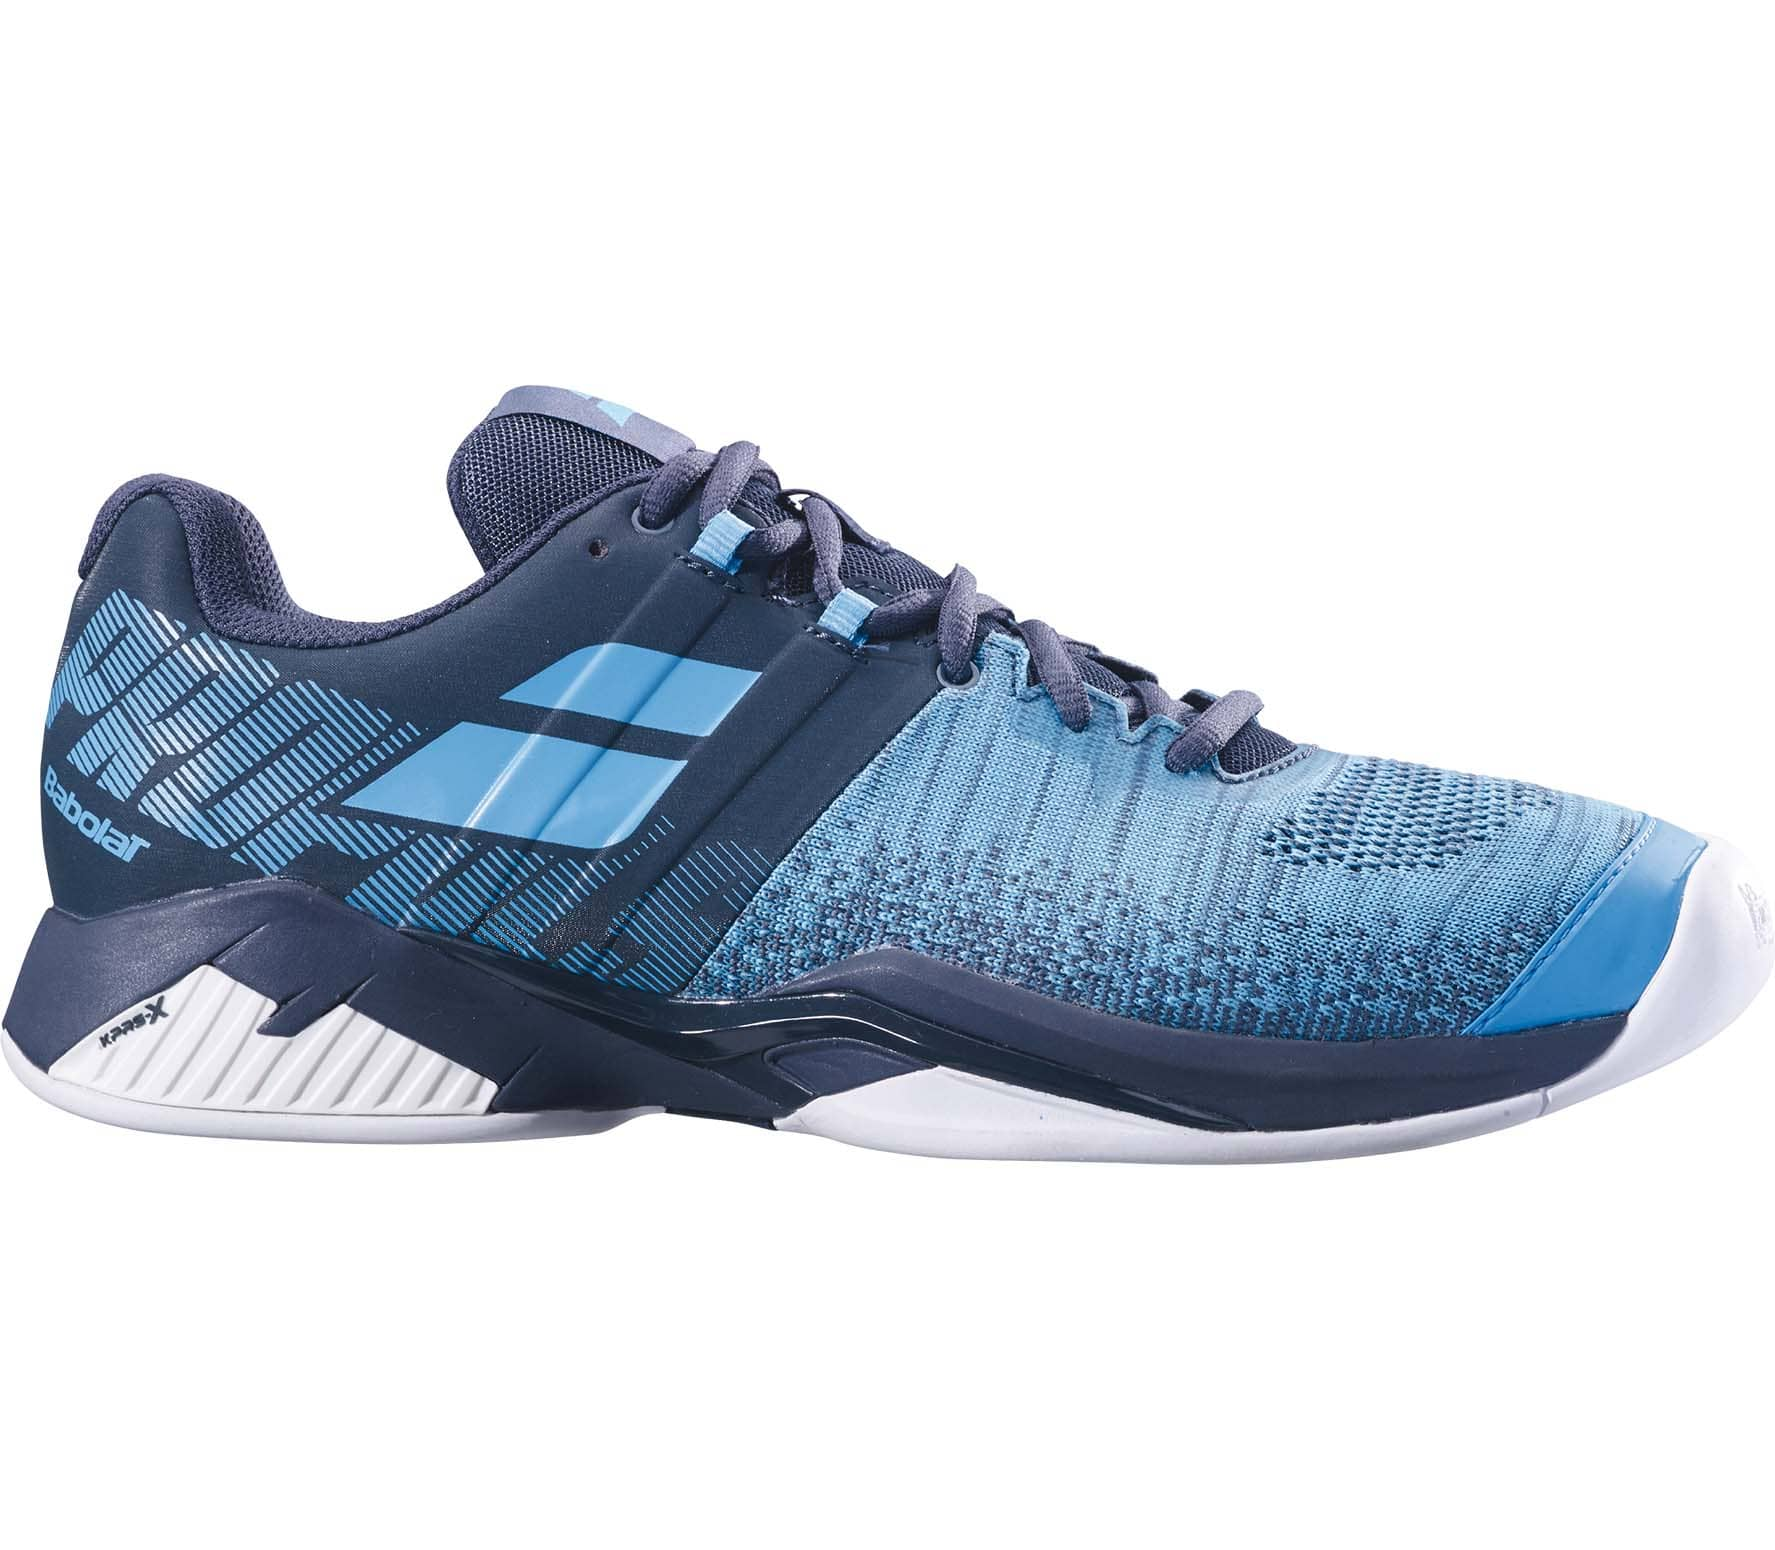 Pro Pulse Blast men's tennis shoes Herren